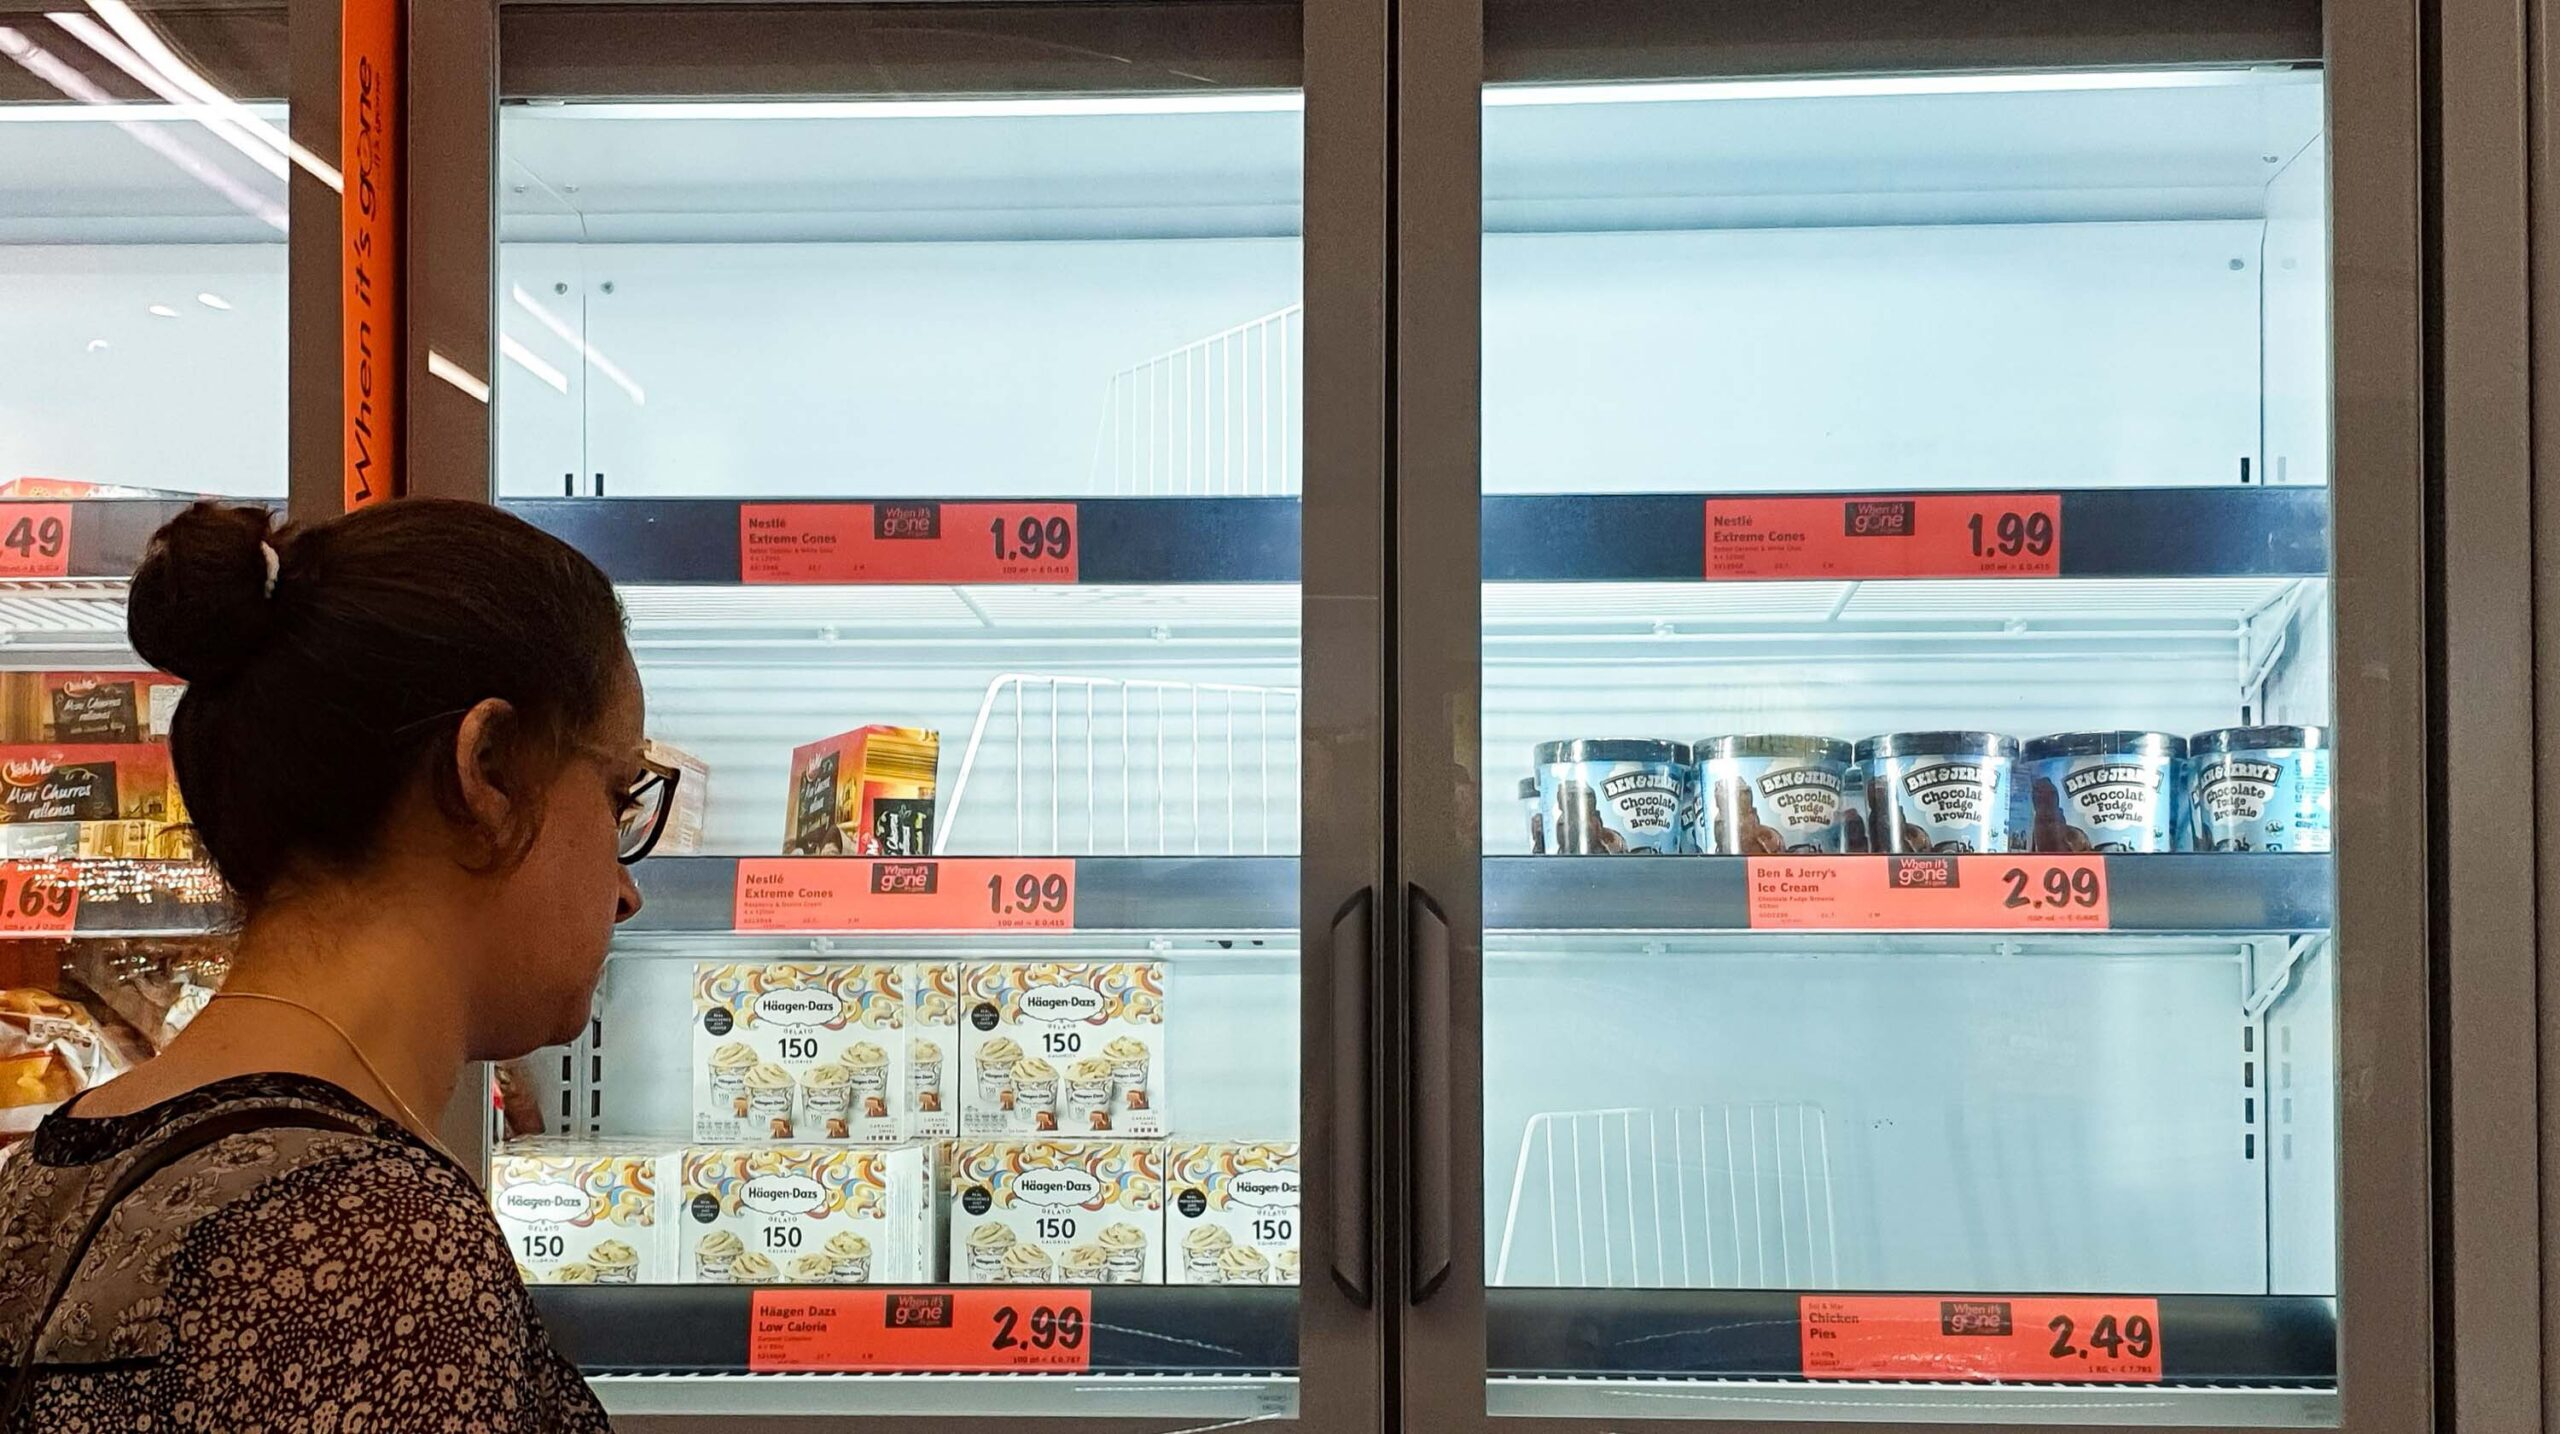 <i>Dinendra Haria/LNP/Shutterstock</i><br/>A customer looks at the depleted stock of ice cream at a Lidl supermarket. A dramatic surge in Covid-19 cases is forcing hundreds of thousands of workers to stay home in Britain